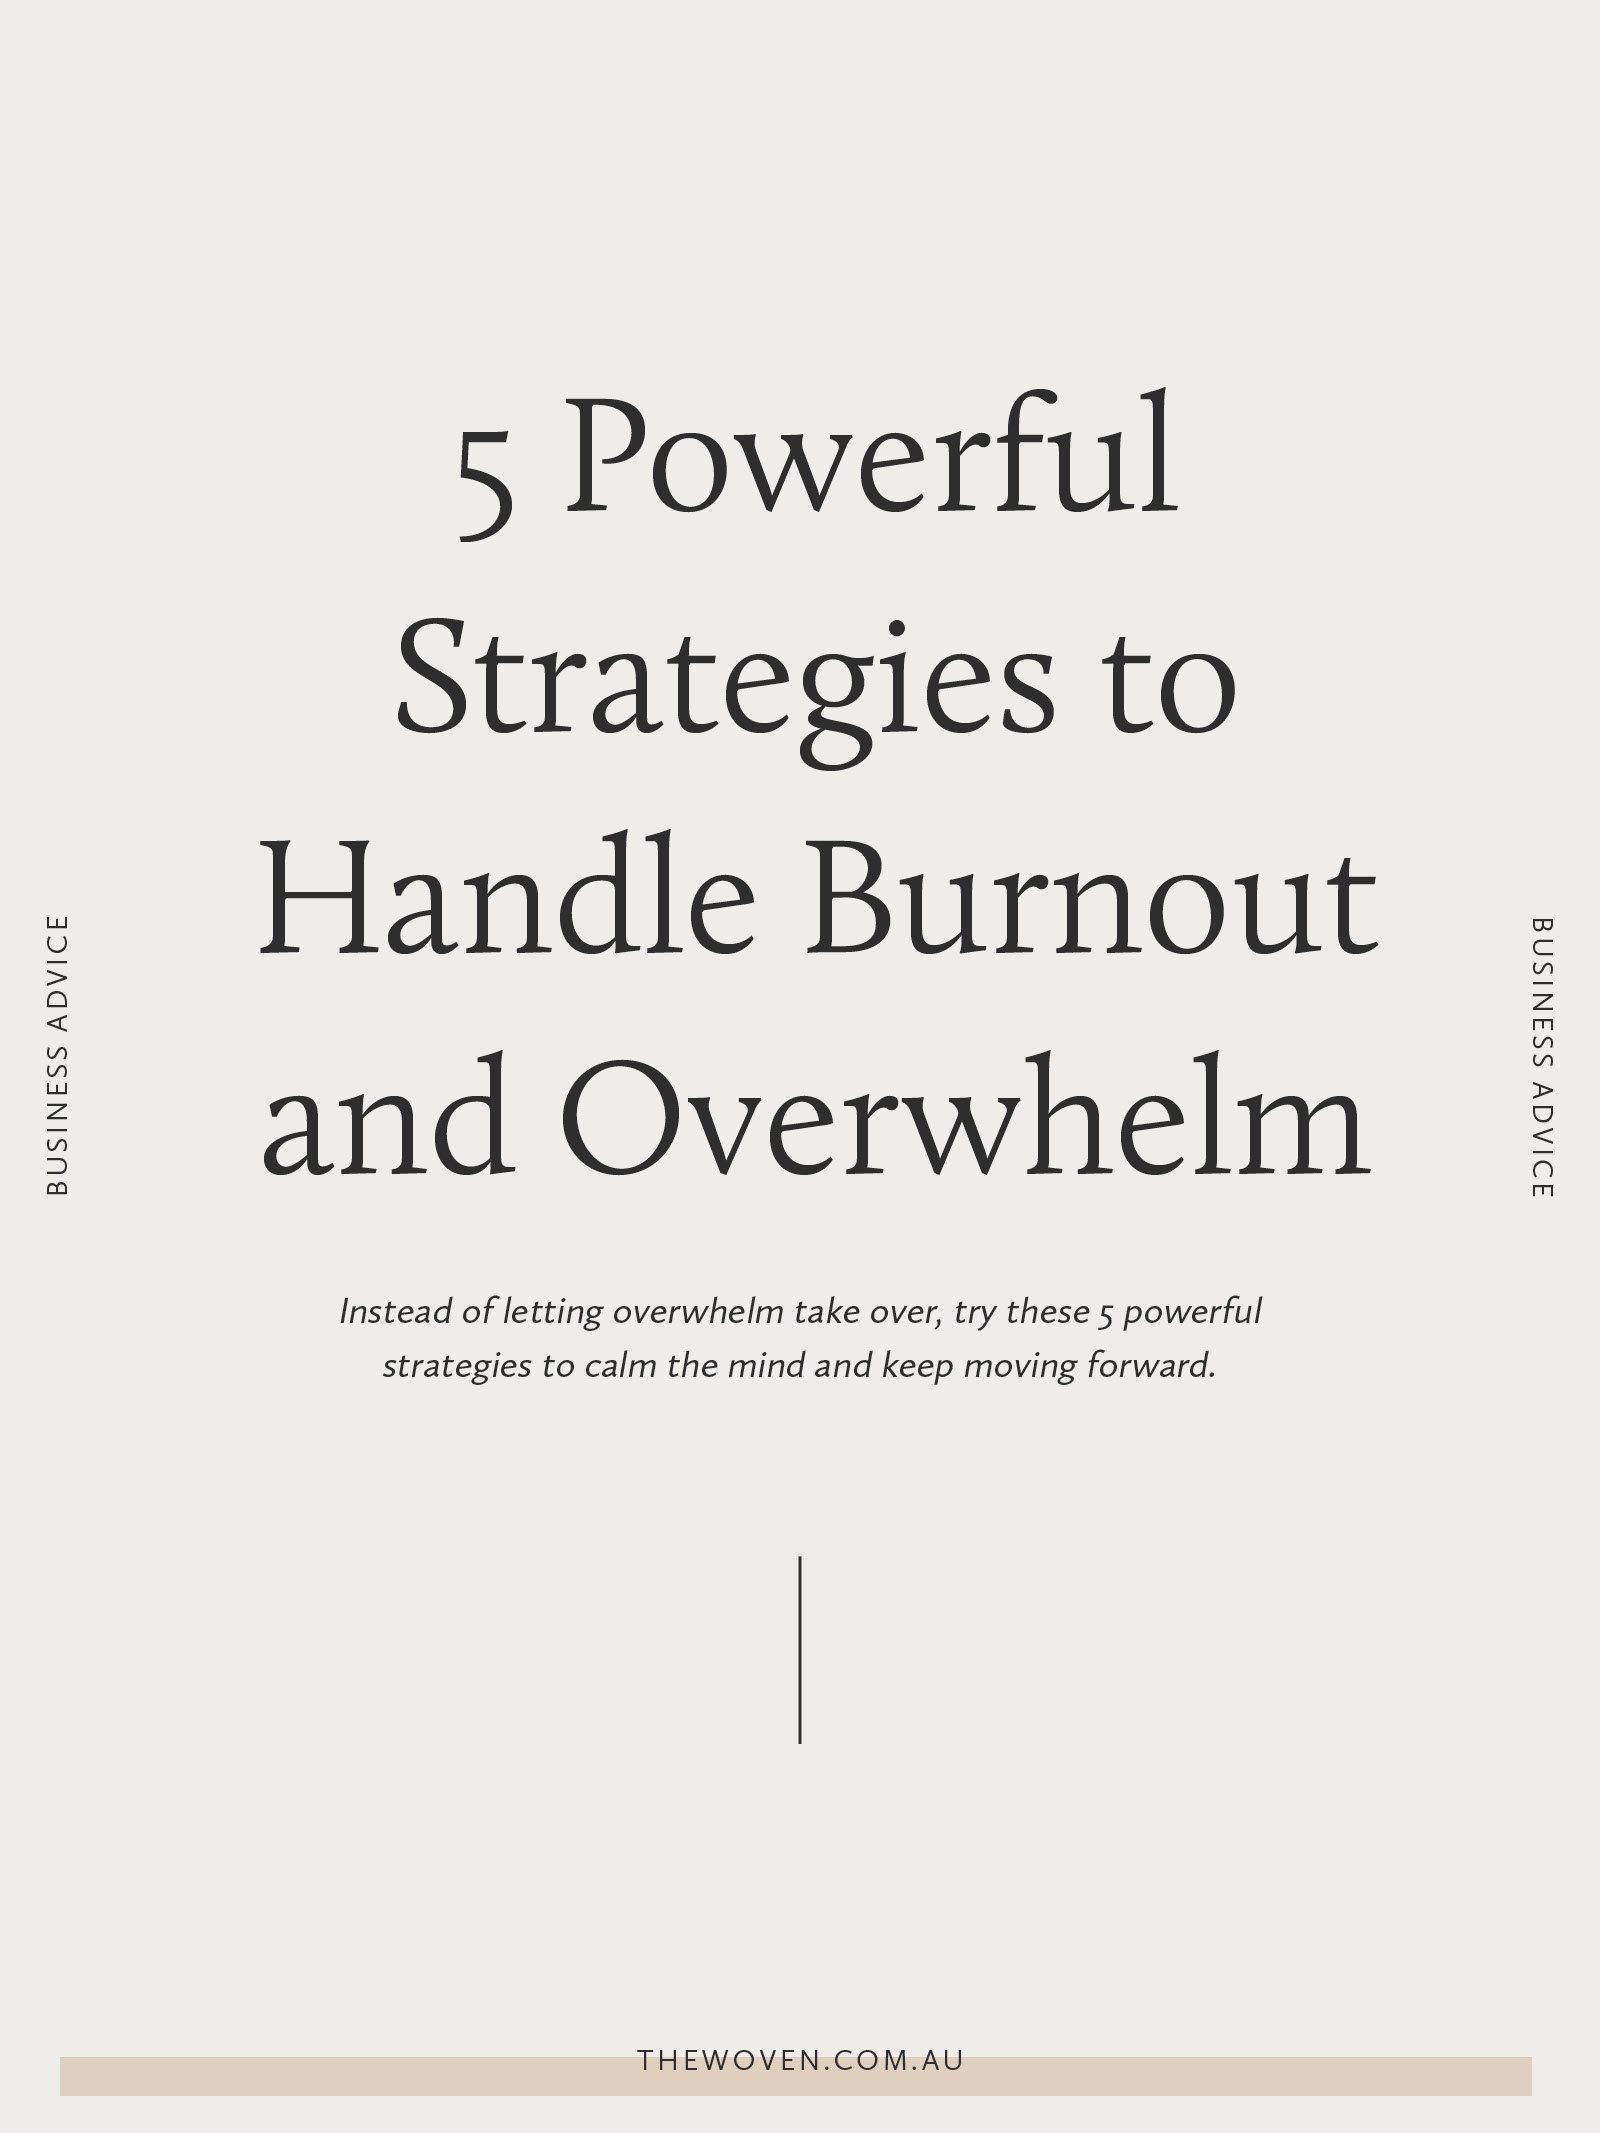 5 Powerful Strategies to Handle Burnout